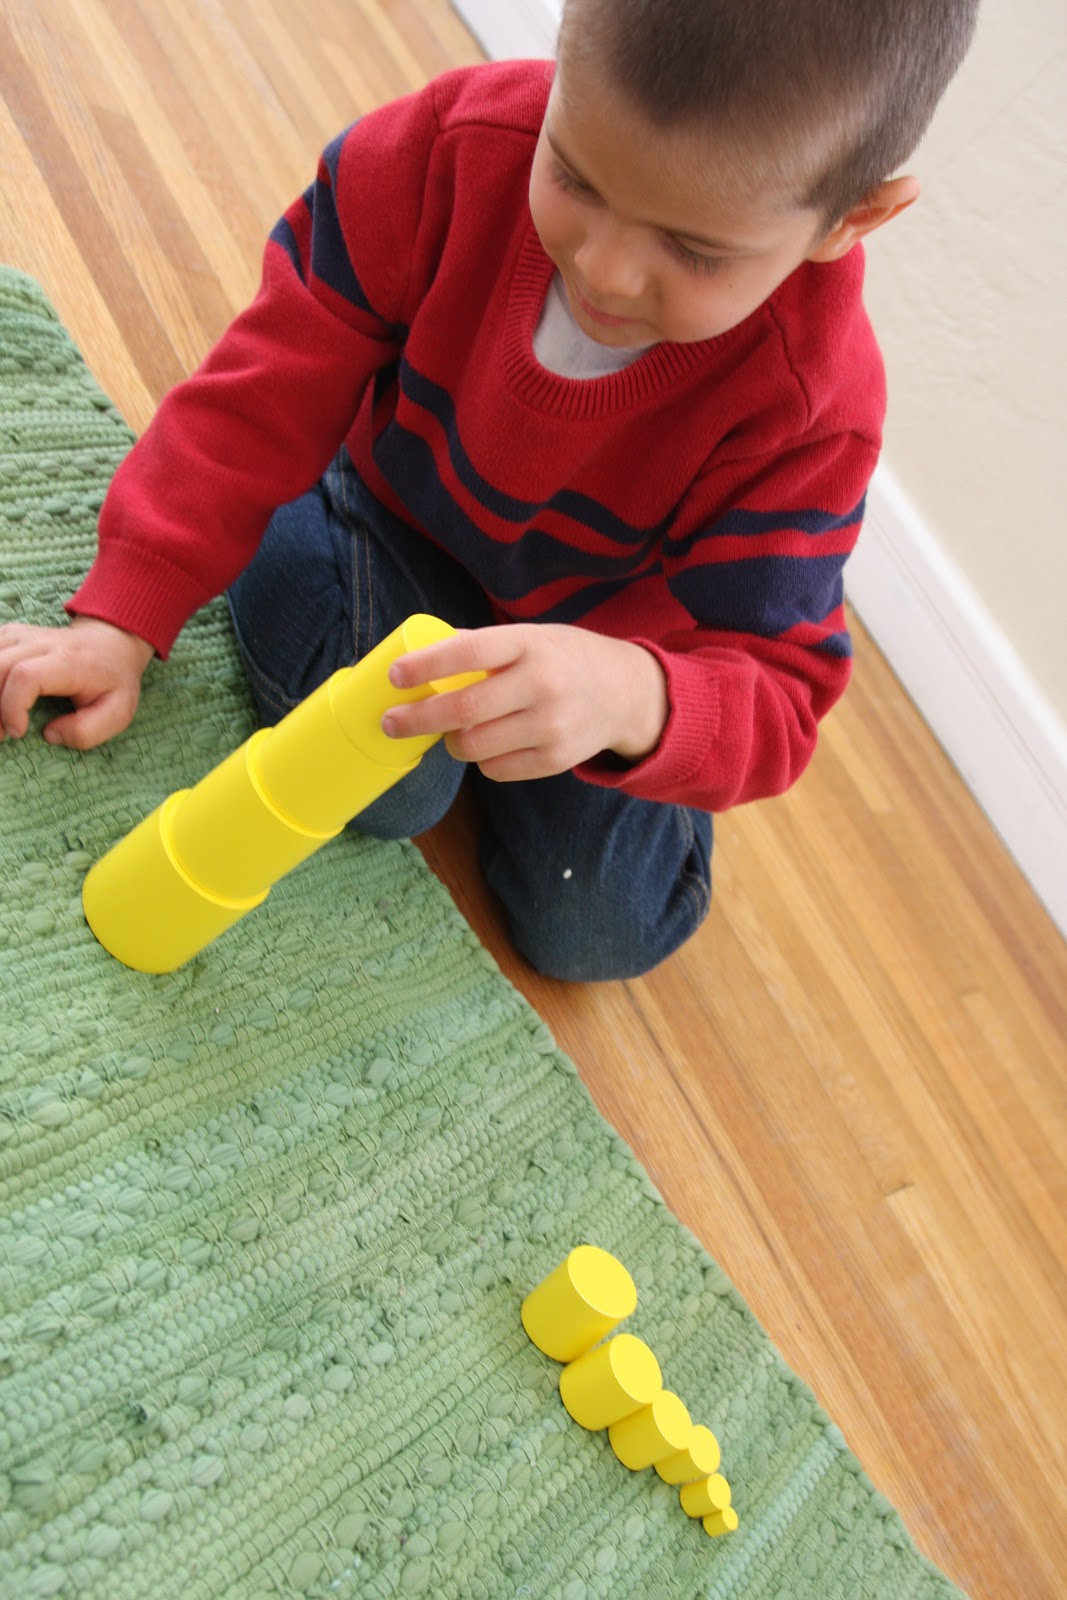 montessori education The masters degree in montessori education is designed to enhance qualifications for individuals in classroom teaching incorporating the montessori approach to education.